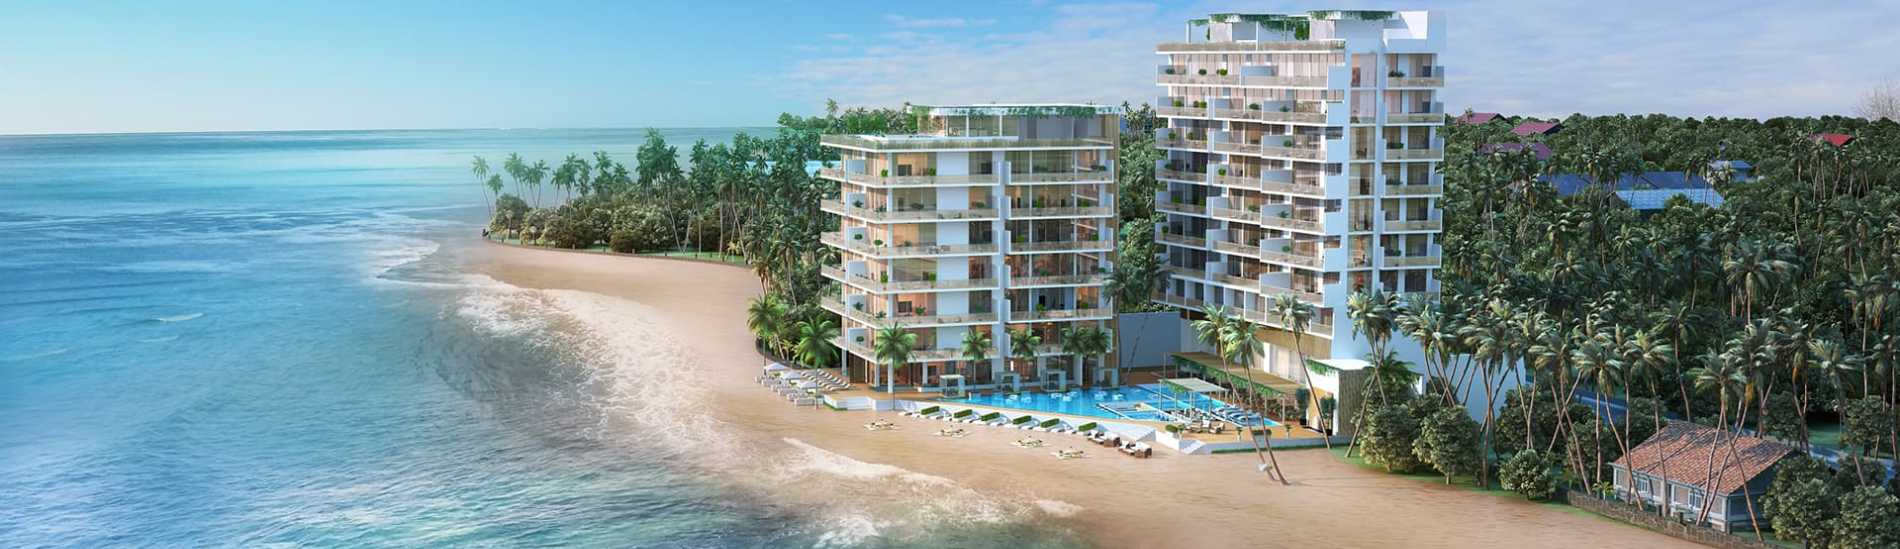 Daily FT - 2 Level Custom Sky Penthouse of Serenia Residences snapped up for USD 1.1 m